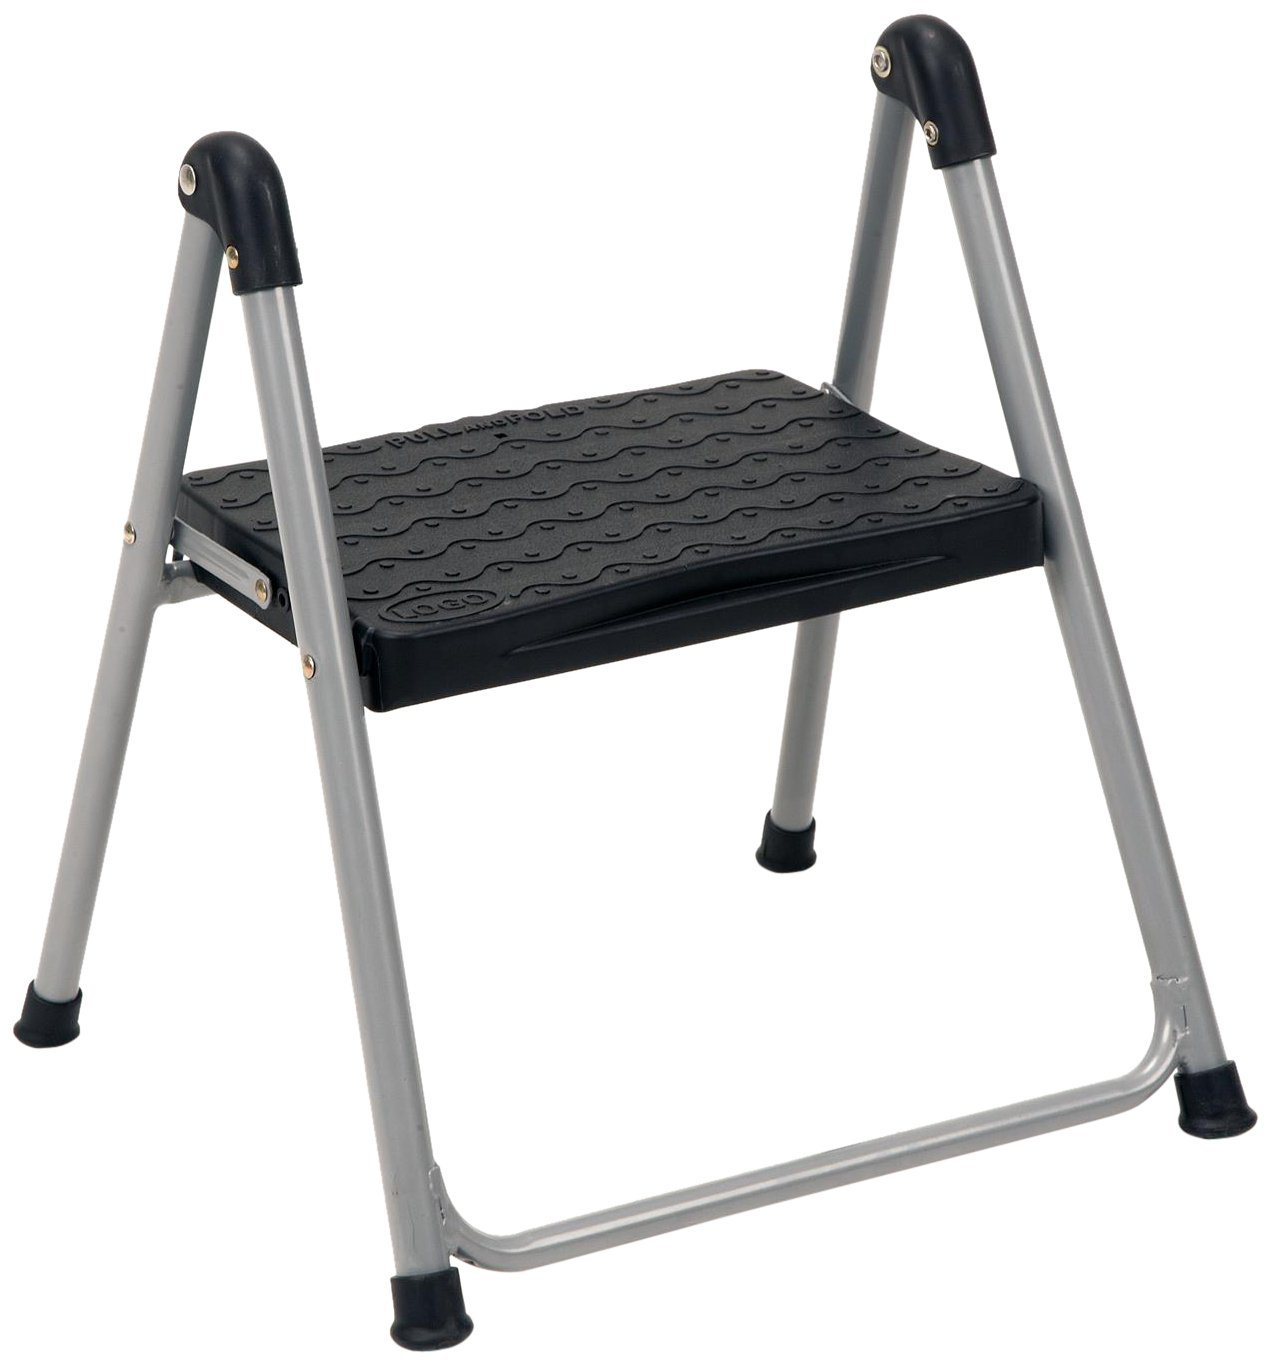 Amazon.com Cosco Dorel Industries Lightweight Folding Steel Step Stool One Step Kitchen u0026 Dining  sc 1 st  Amazon.com & Amazon.com: Cosco Dorel Industries Lightweight Folding Steel Step ... islam-shia.org